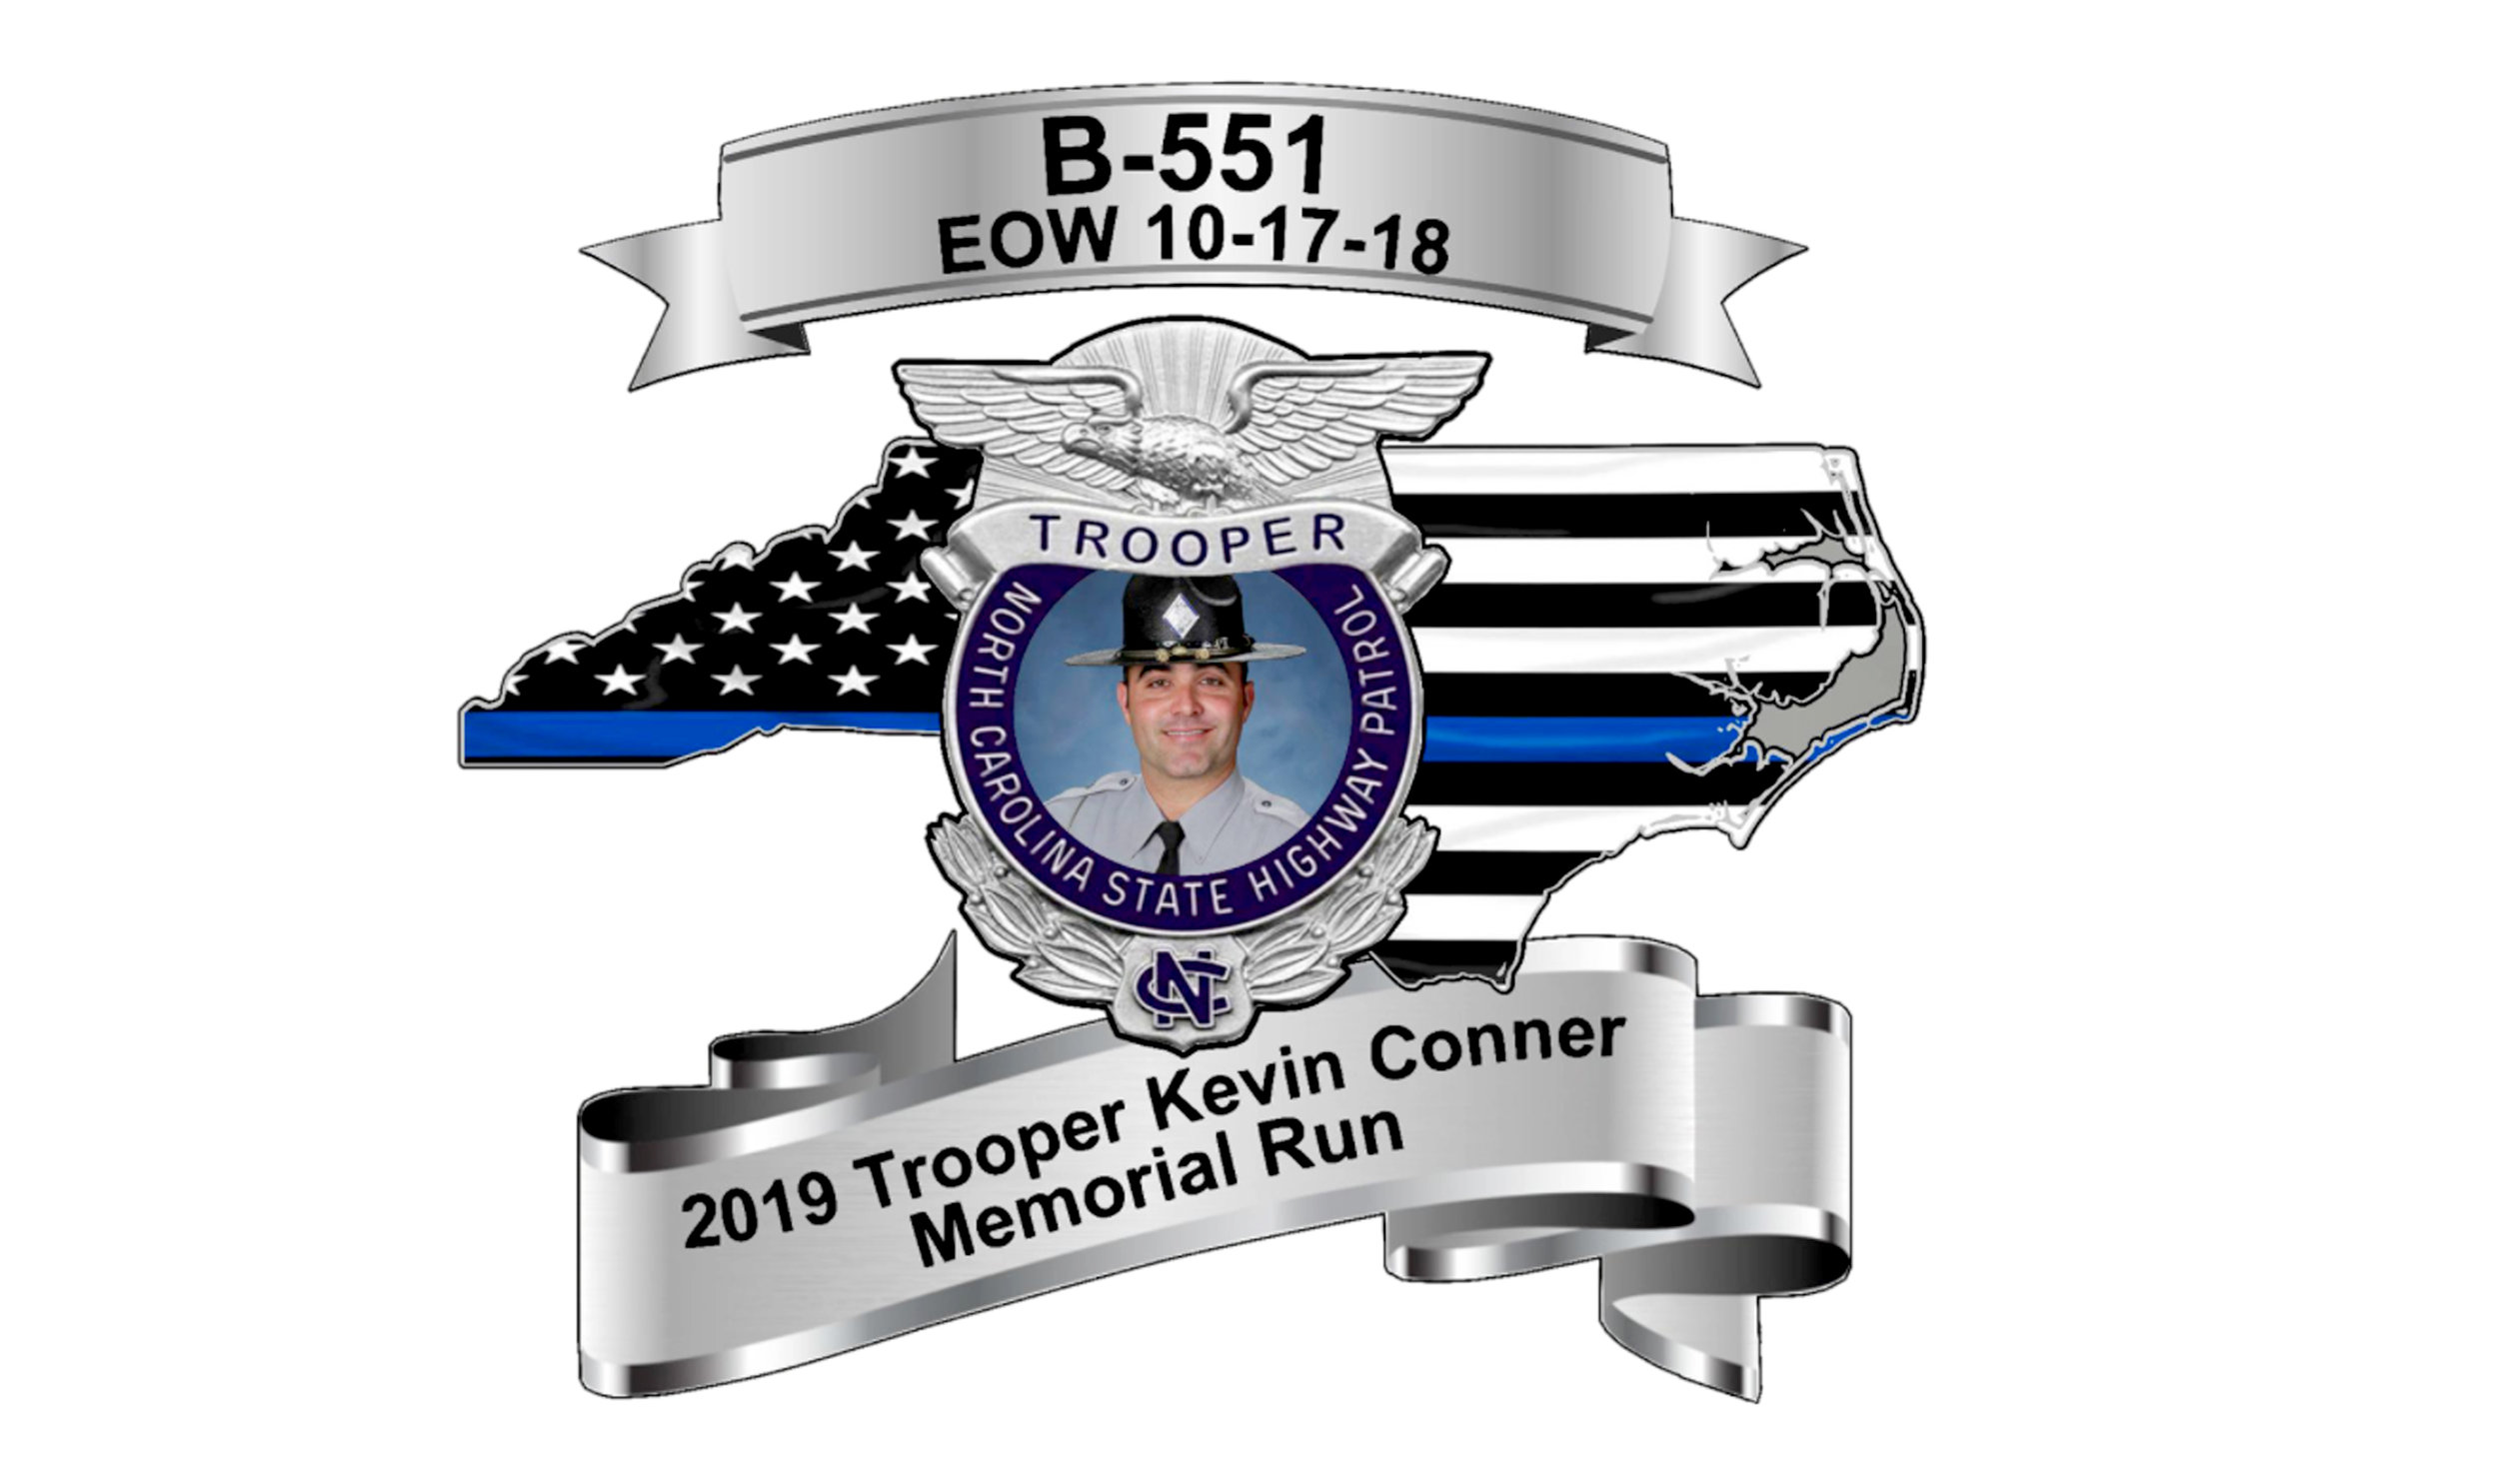 A 5K and !-Mile Fun Run in memory of Trooper Kevin Conner is Oct. 19 in downtown Whiteville. Proceeds will fund a scholarship in his memory.